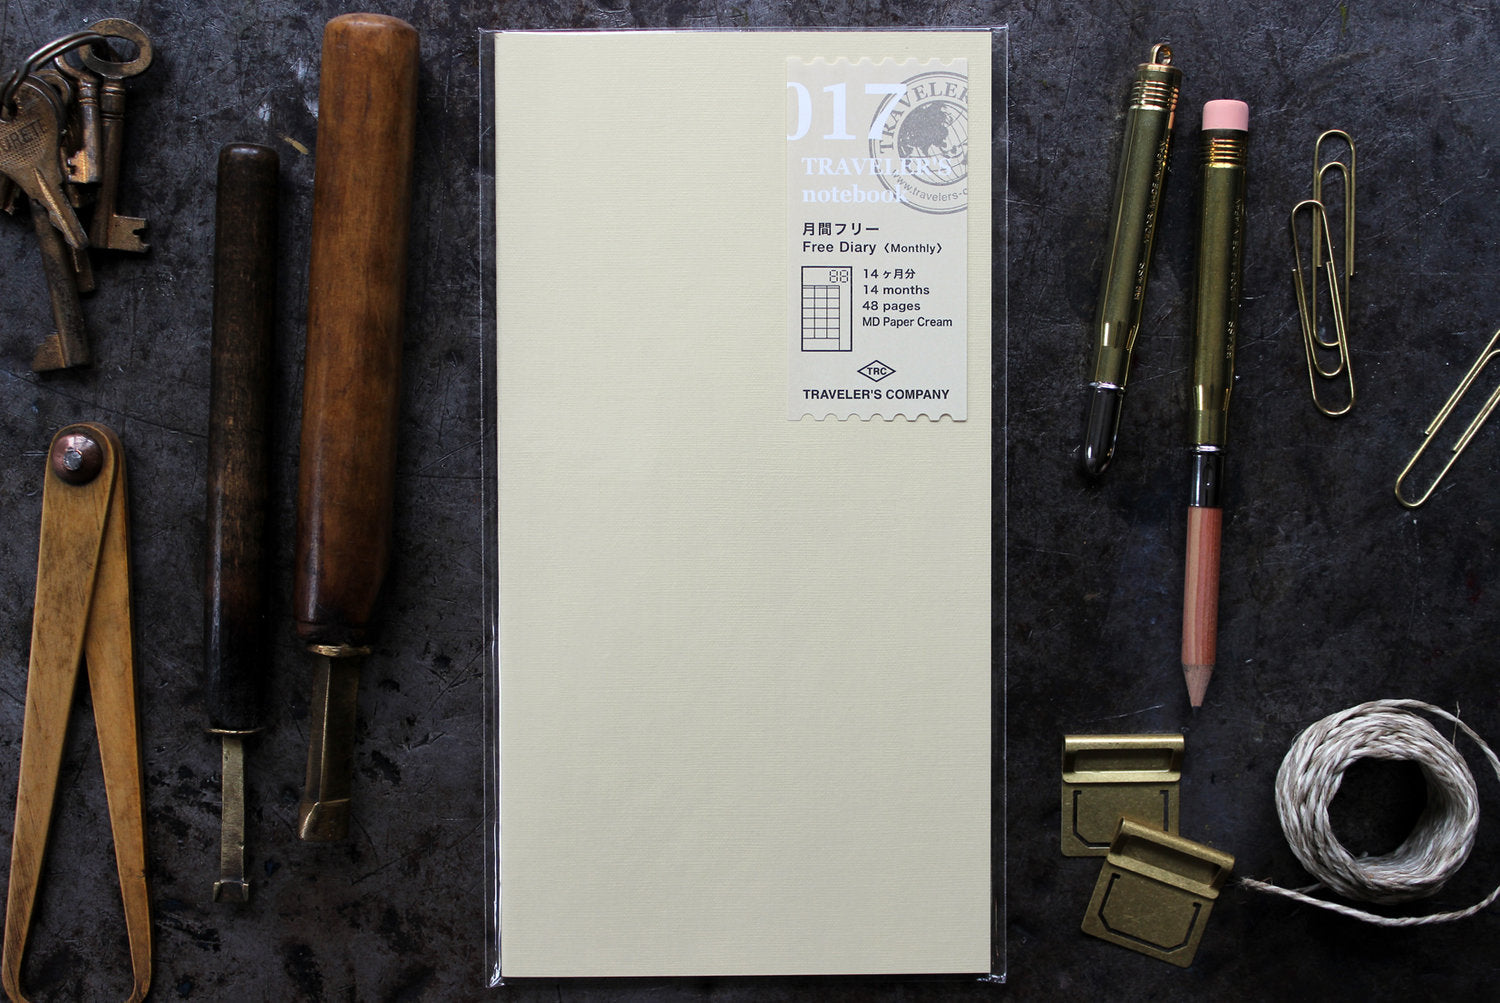 Traveler's Company Regular Notebook Refill - 017 Free Diary Monthly